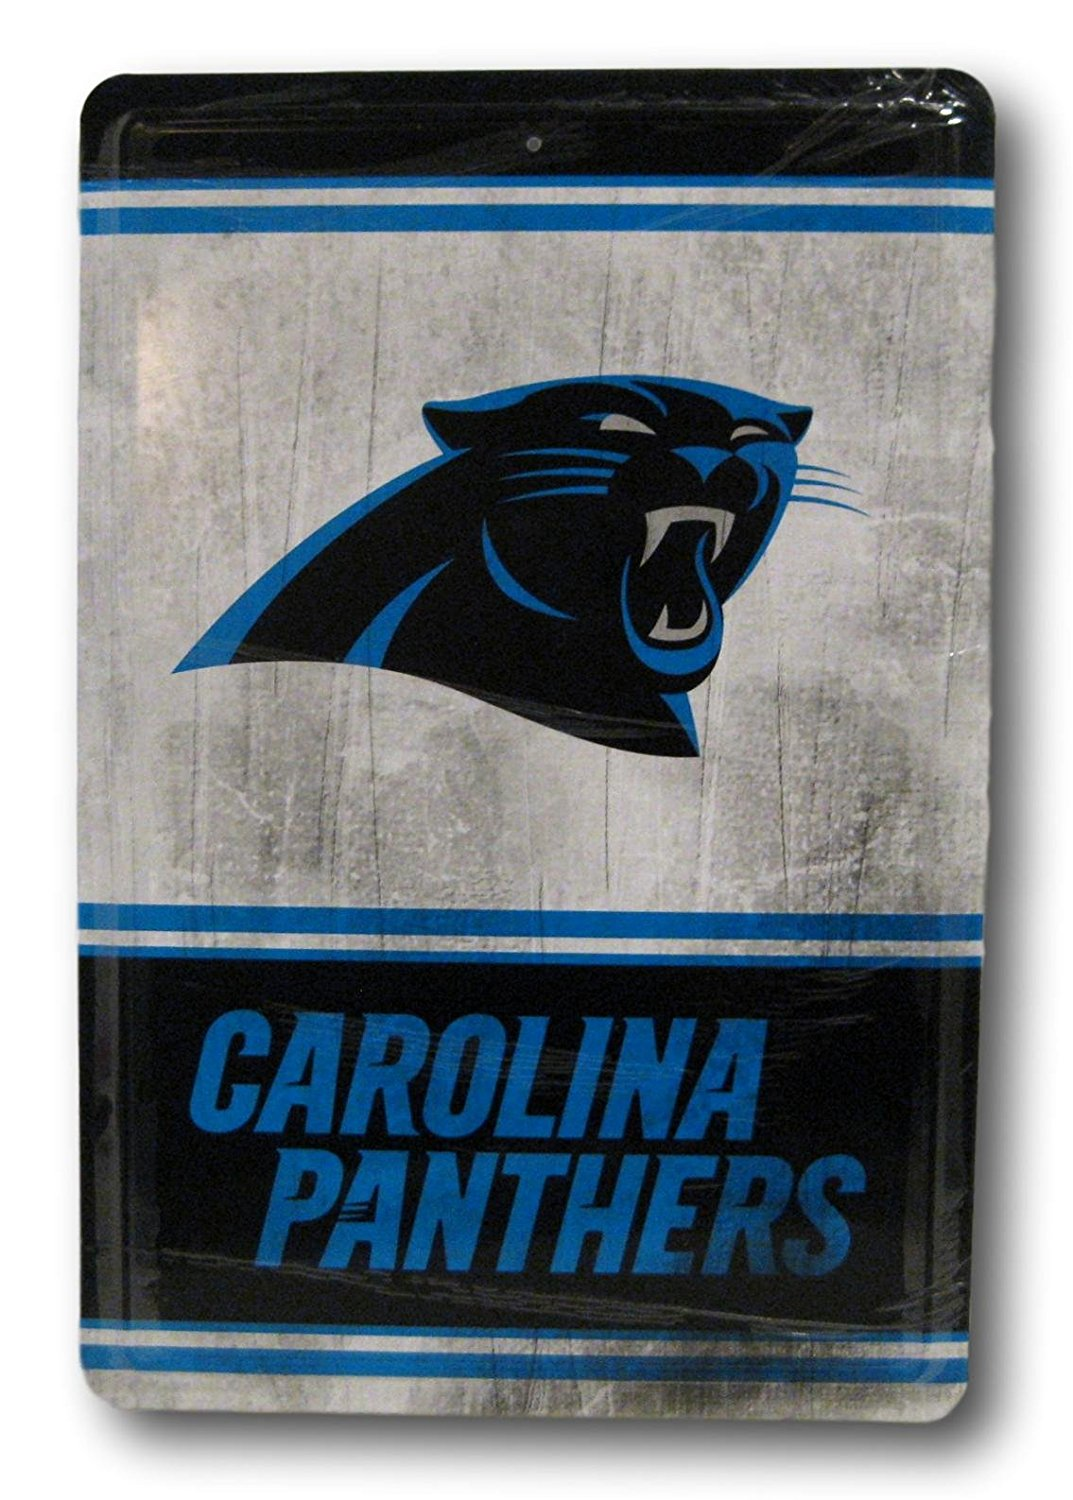 CAROLINA PANTHERS Vinyl Decal Sticker for Car Truck Window Sports Football